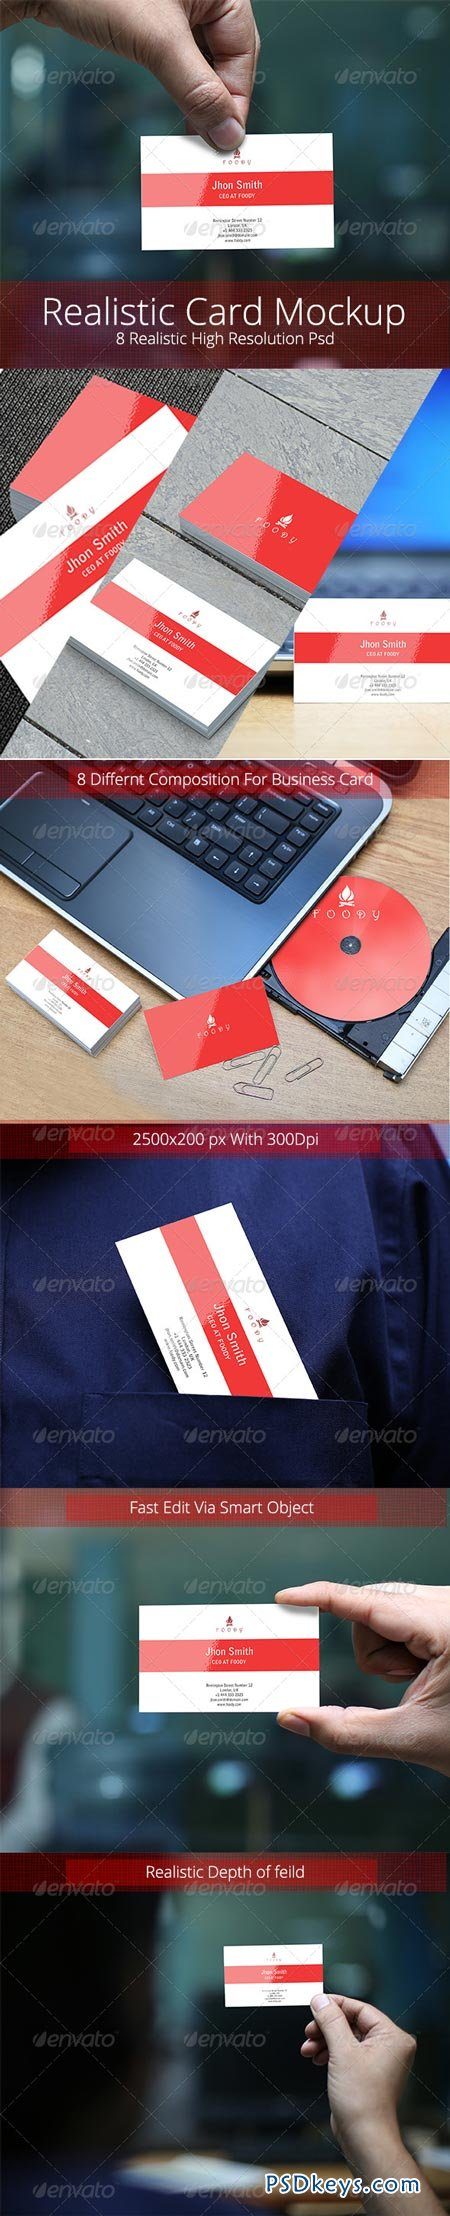 Realistic Business Card Mockup 6384339